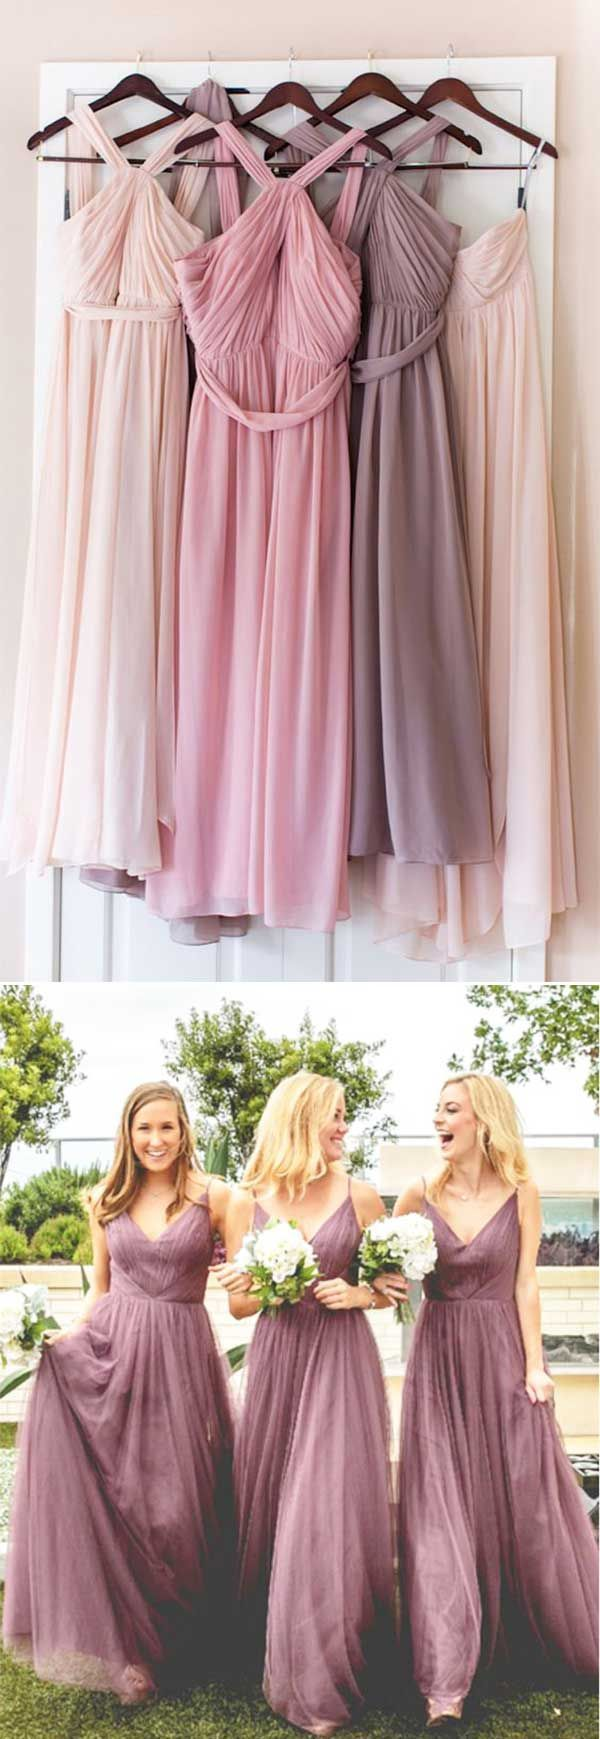 2018 STYLISH & PRETTIEST WEDDING COLOR TREND : SHADE OF MAUVE - Wedding Invites Paper dusty pink wedding dresses/ shade of purple wedding gowns/ mauve bridesmaid dress #weddinginvitation